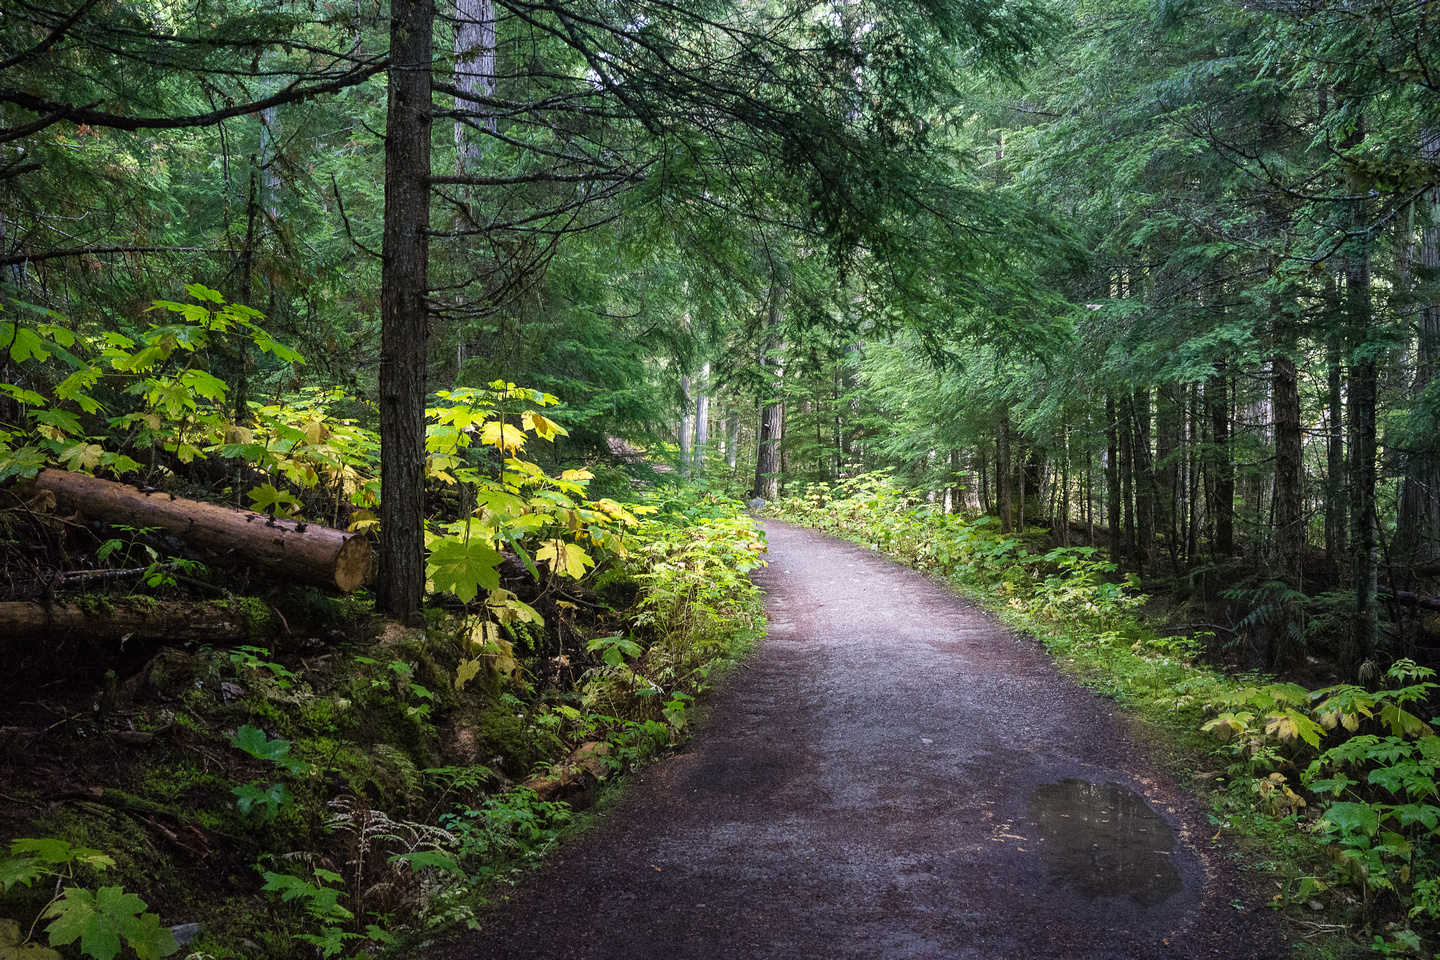 BC forests are so much more lush than AB ones!